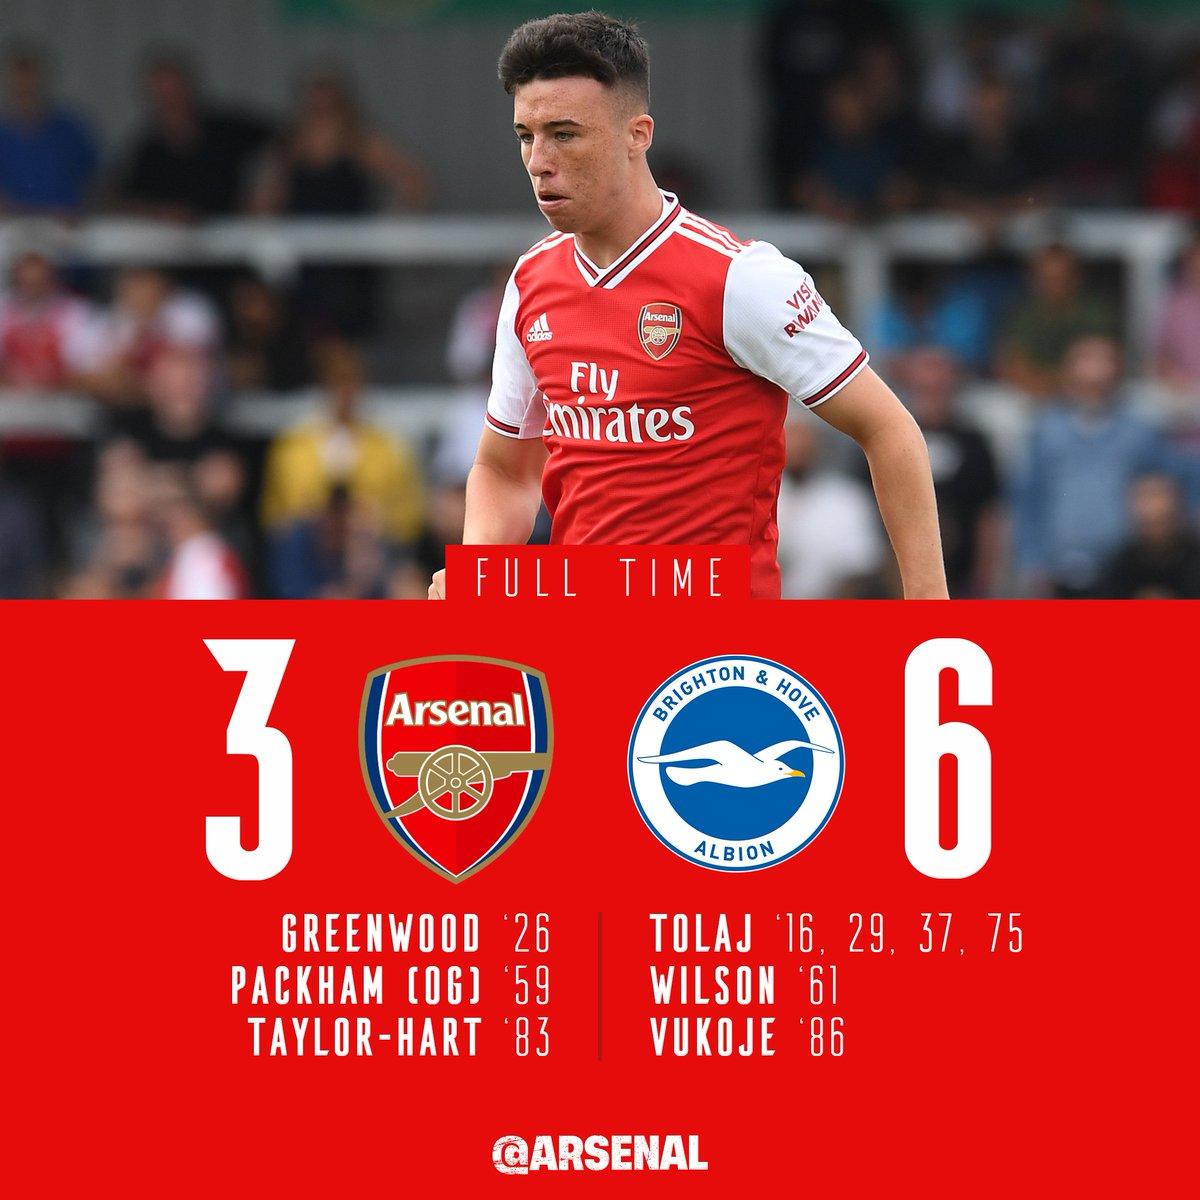 #AFCU18 suffer defeat at Colney despite goals from @Sam_Greenwood9 and Taylor-Hart 😩